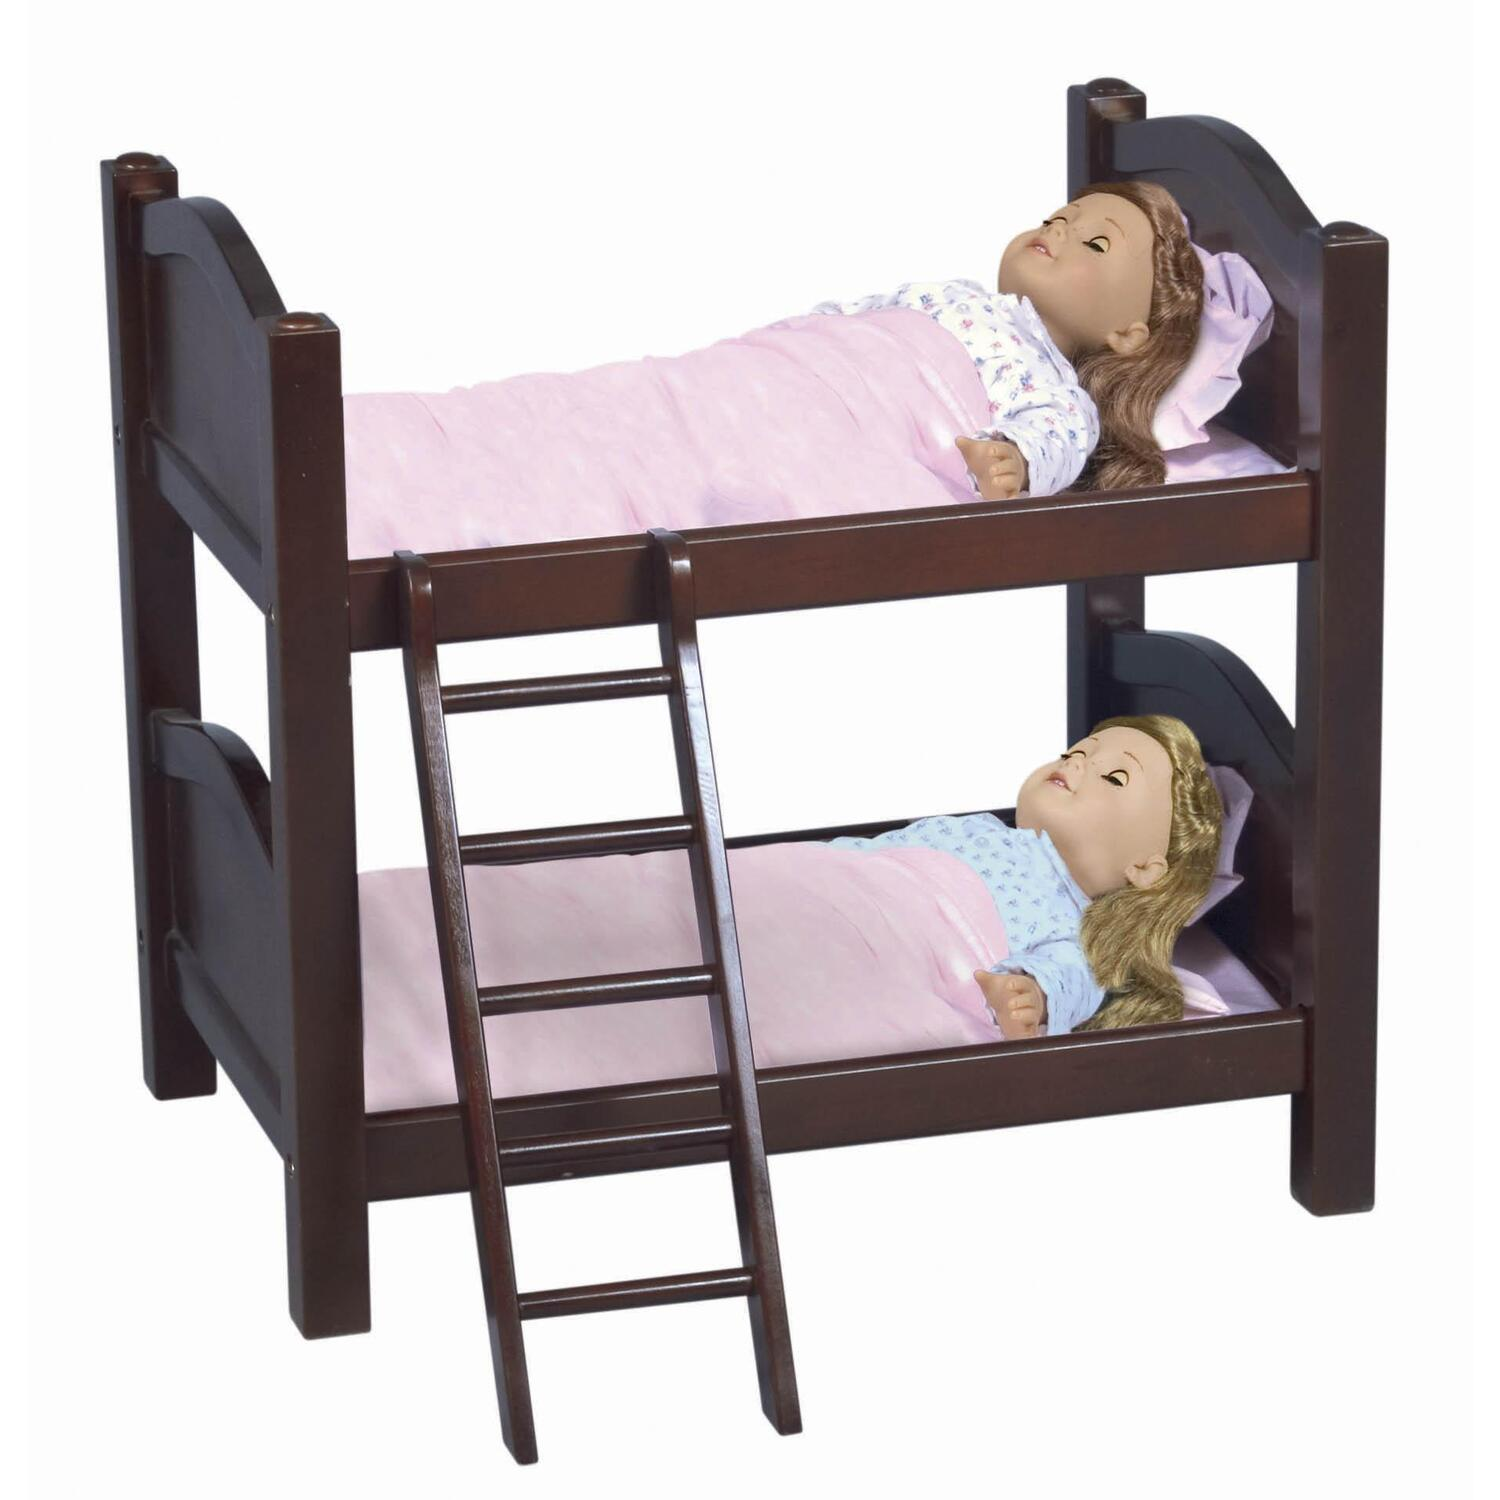 Bunk Bed Dolls: Doll Bunk Bed